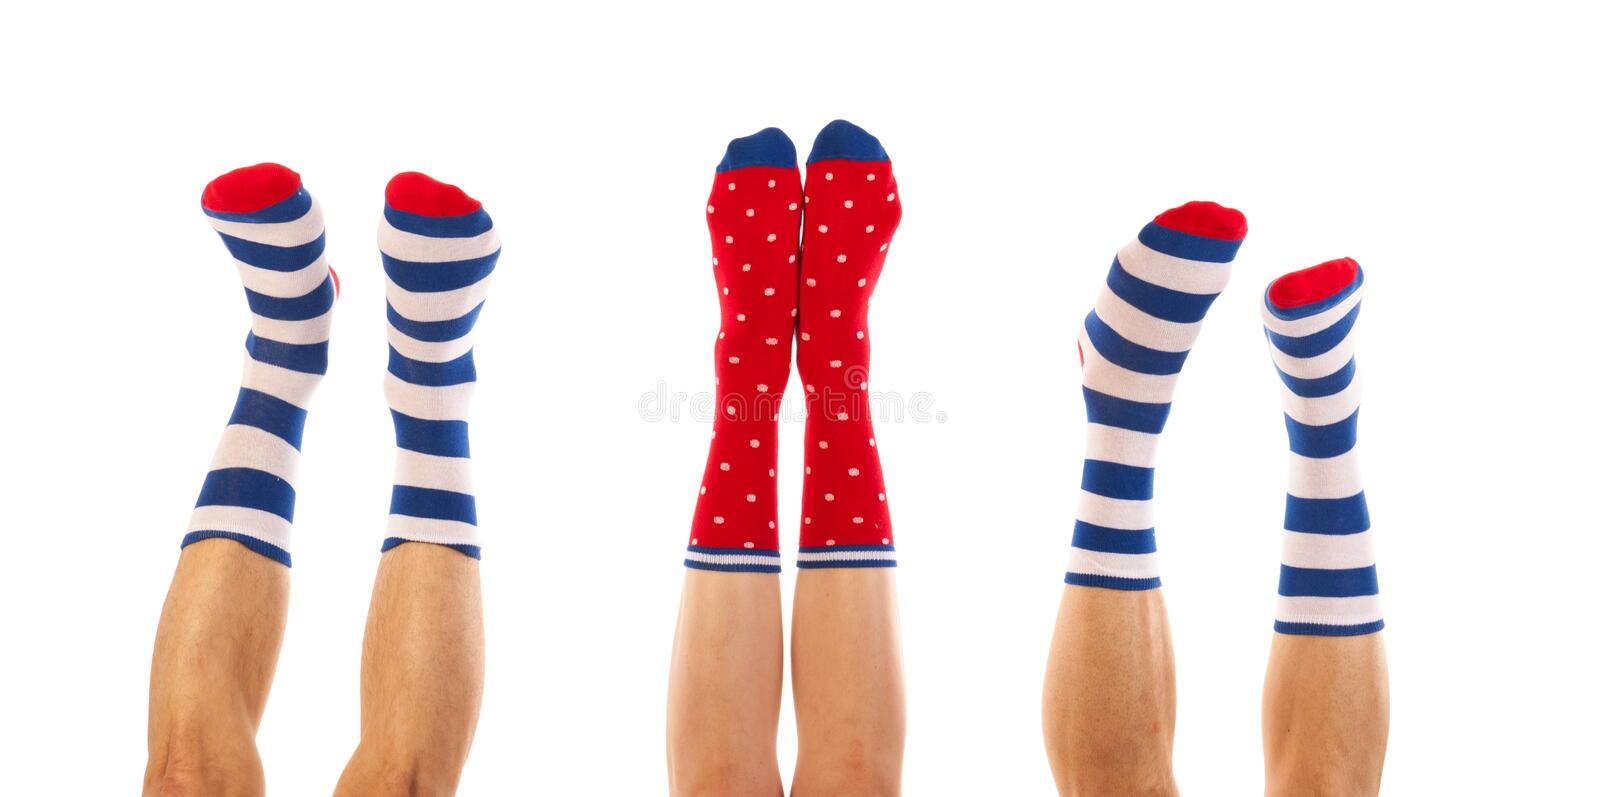 Download Feet in socks stock image. Image of funny, socks, people - 32437999